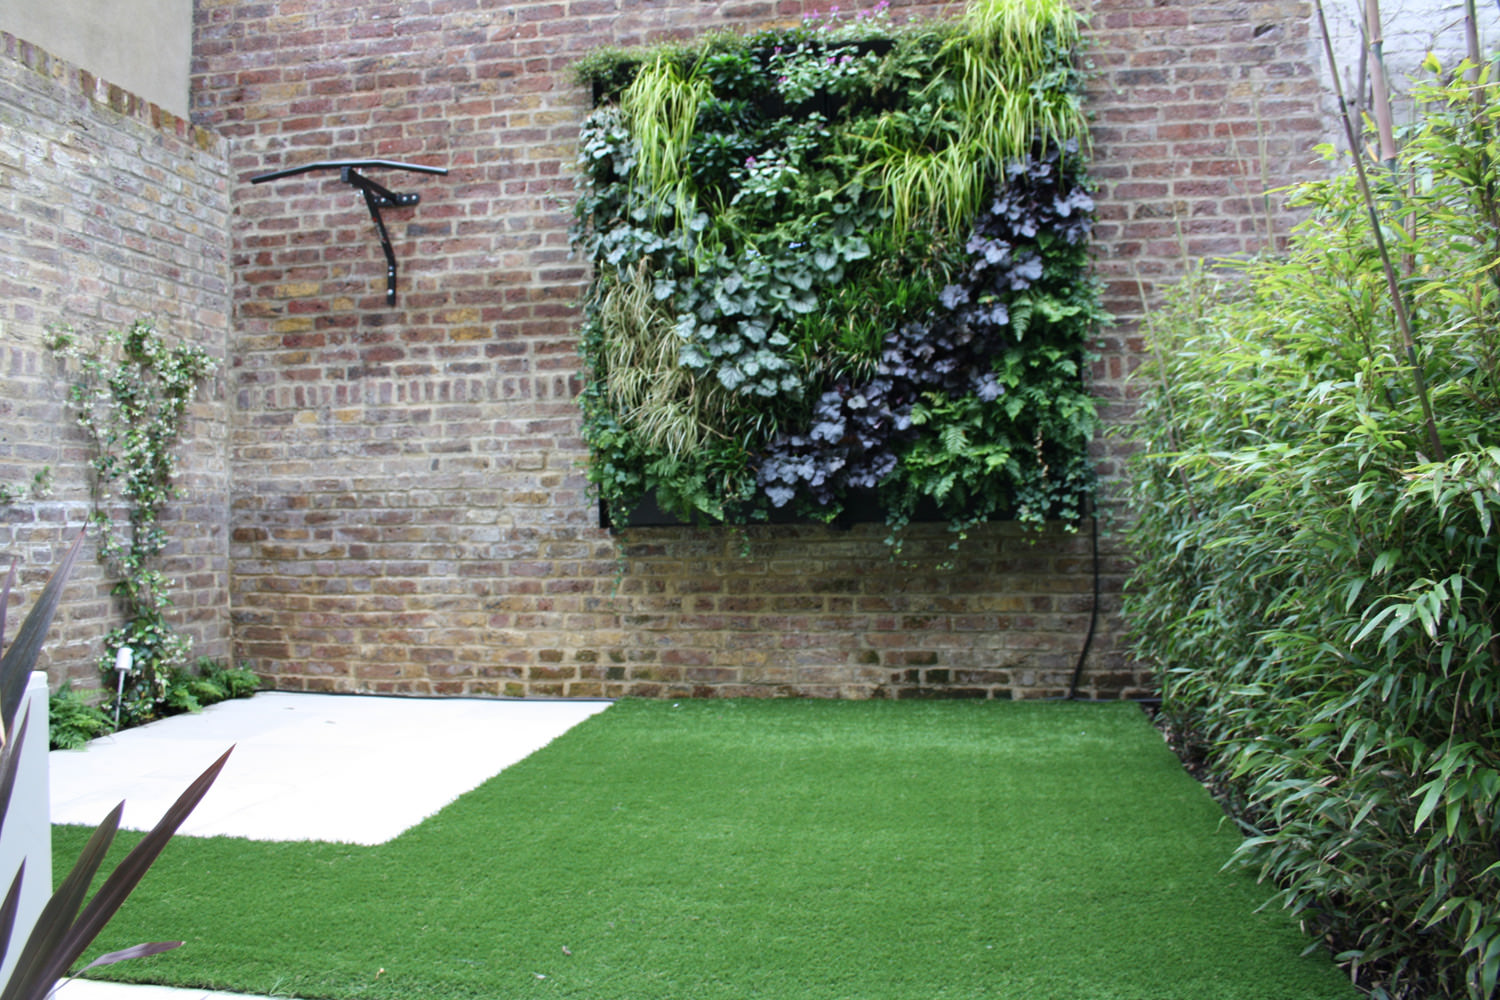 Top 10 london garden designs garden club london for Design in garden